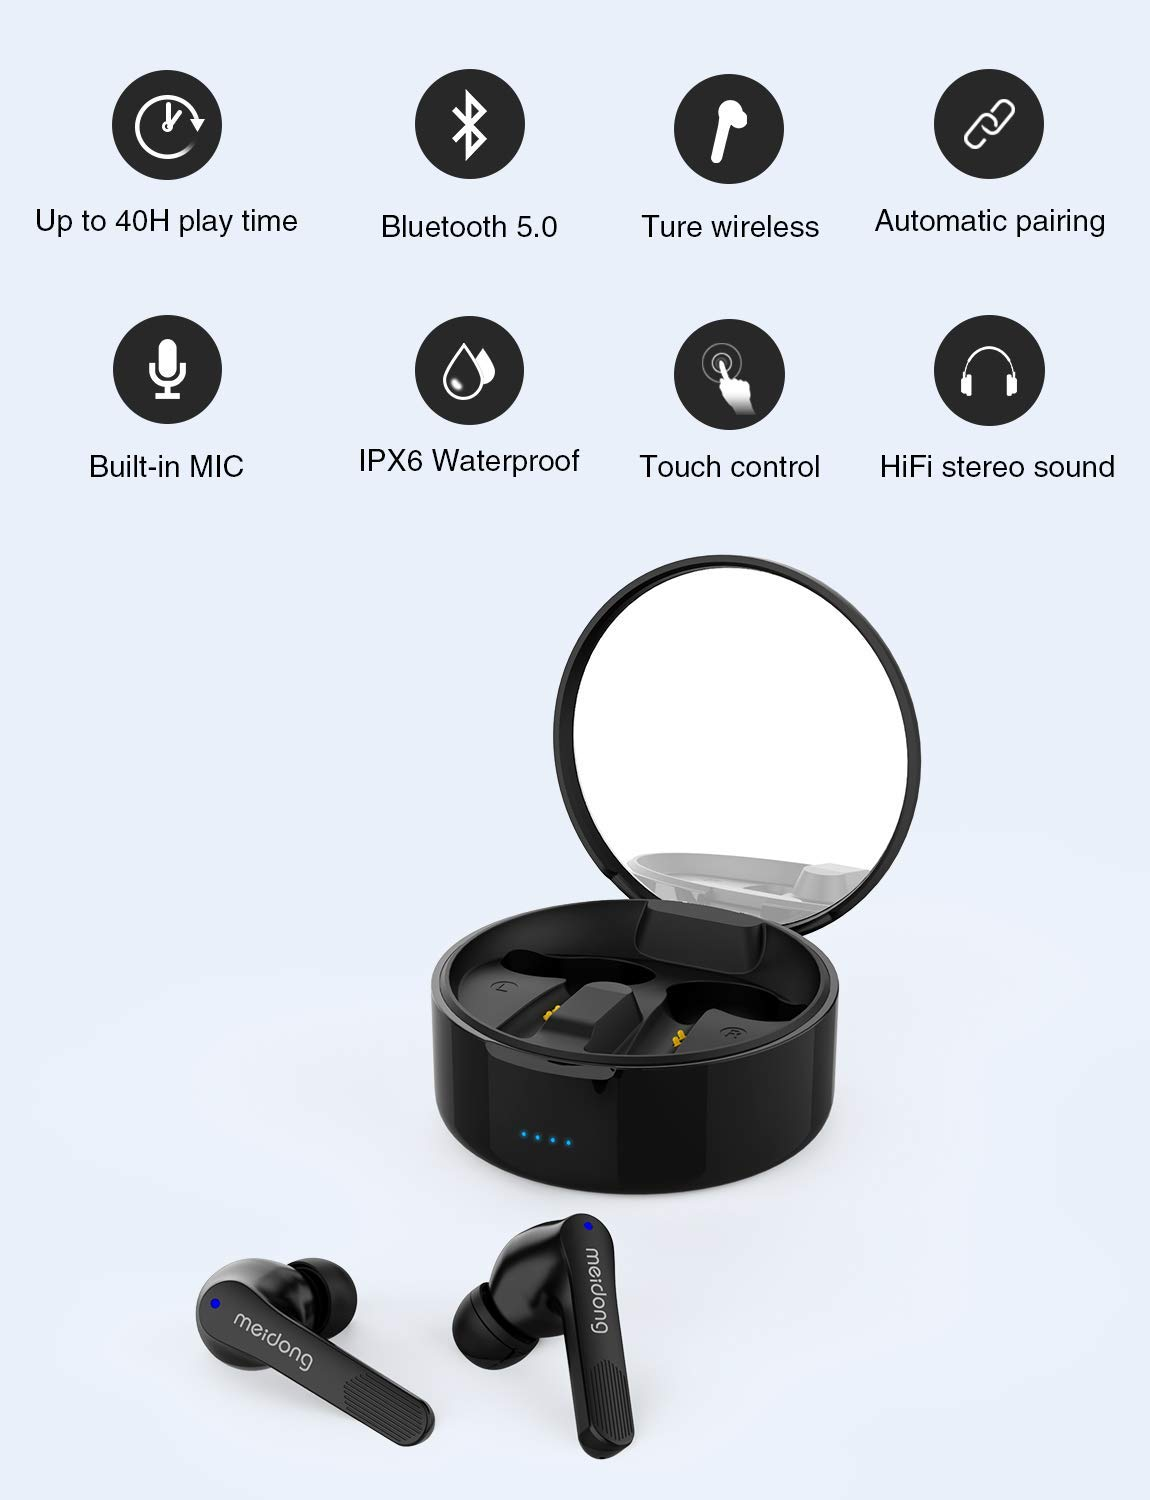 Wireless Earbuds,Meidong KY06A Bluetooth 5.0 Headphones in Ear Buds Wireless Earphones HiFi Stereo IPX6 Waterproof 40H Playtime for Workout Running Sports Gymwith Wireless Charging Case